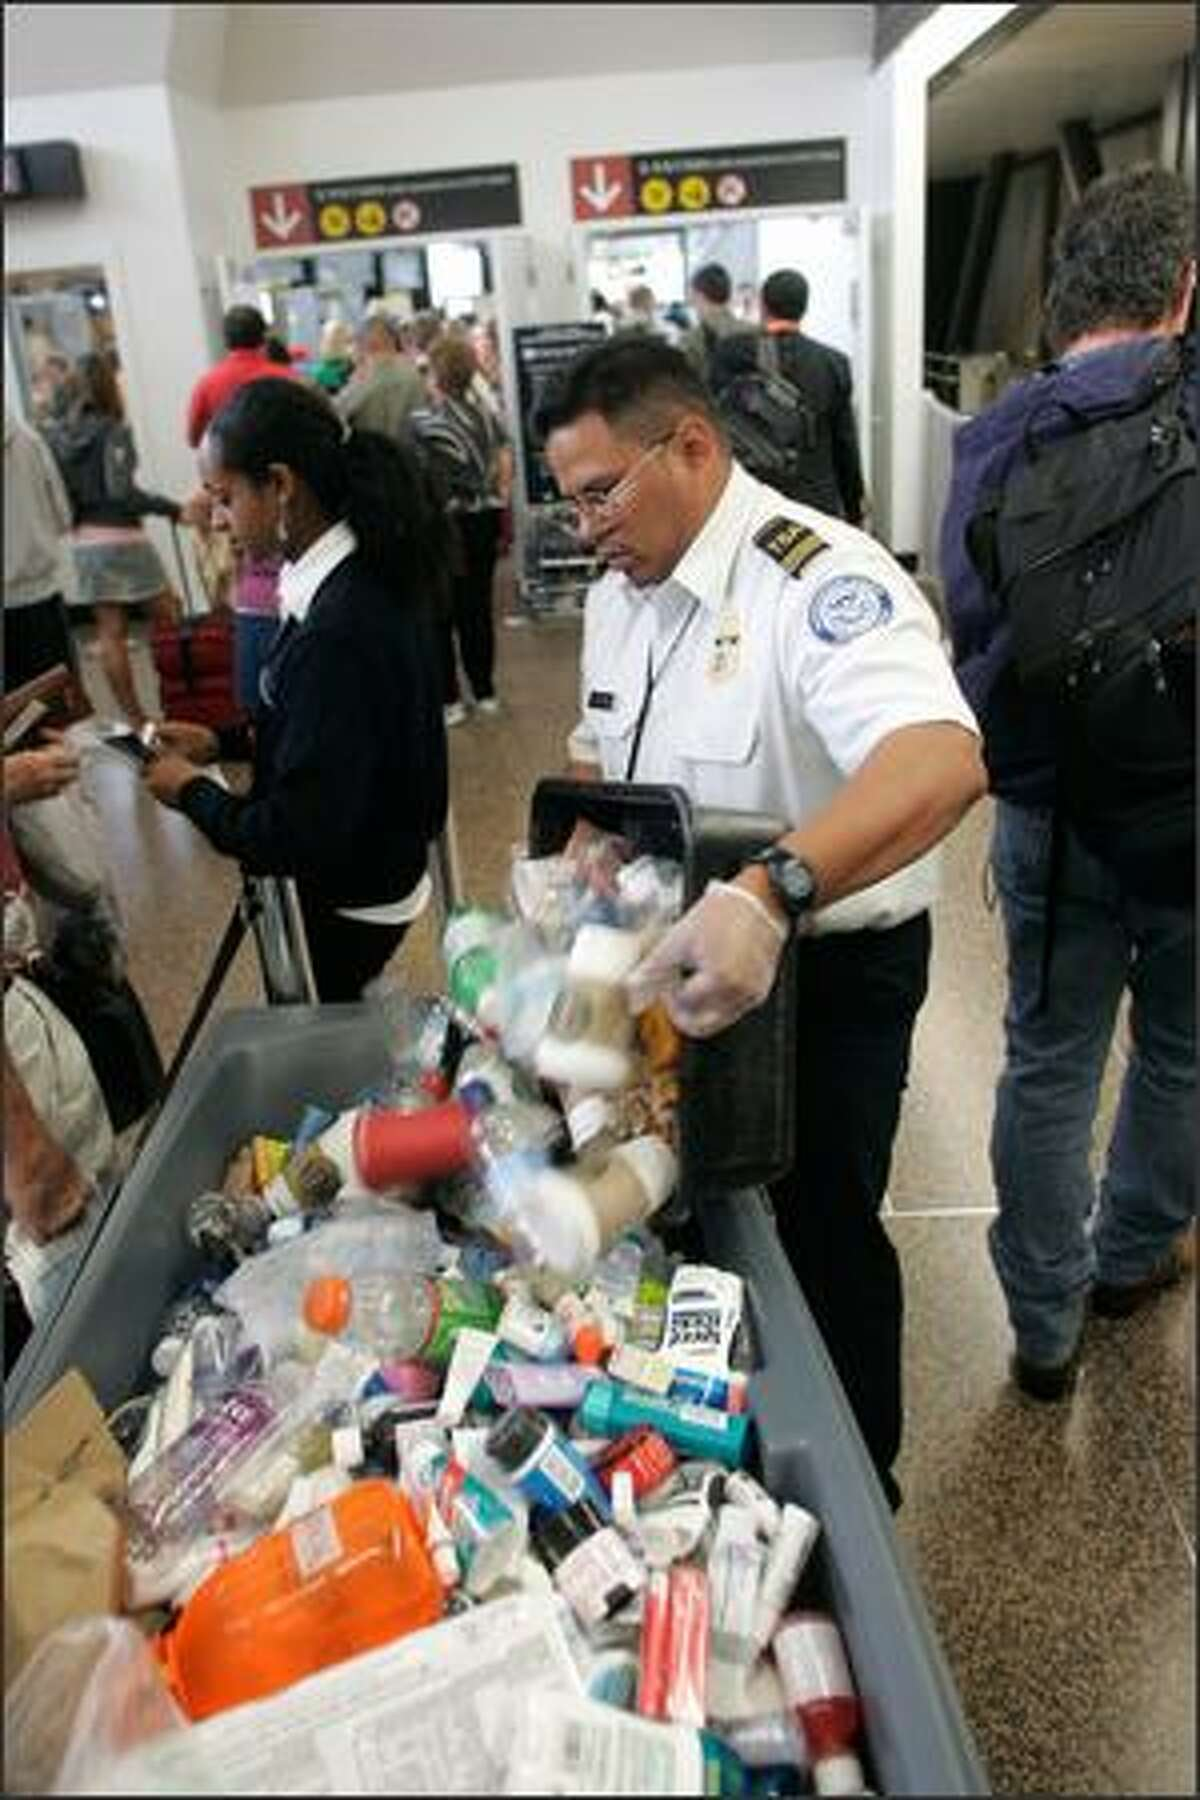 A Transportation Security Administration employee dumps a box containing items no longer permitted on board aircraft -- including beverages, toothpaste, shampoo, deodorant sticks and other such liquids and gels. New restrictions on carry-on luggage were imposed Thursday morning after British authorities thwarted a terrorist plot to blow up airliners headed for the United States using liquid explosives smuggled onto flights.